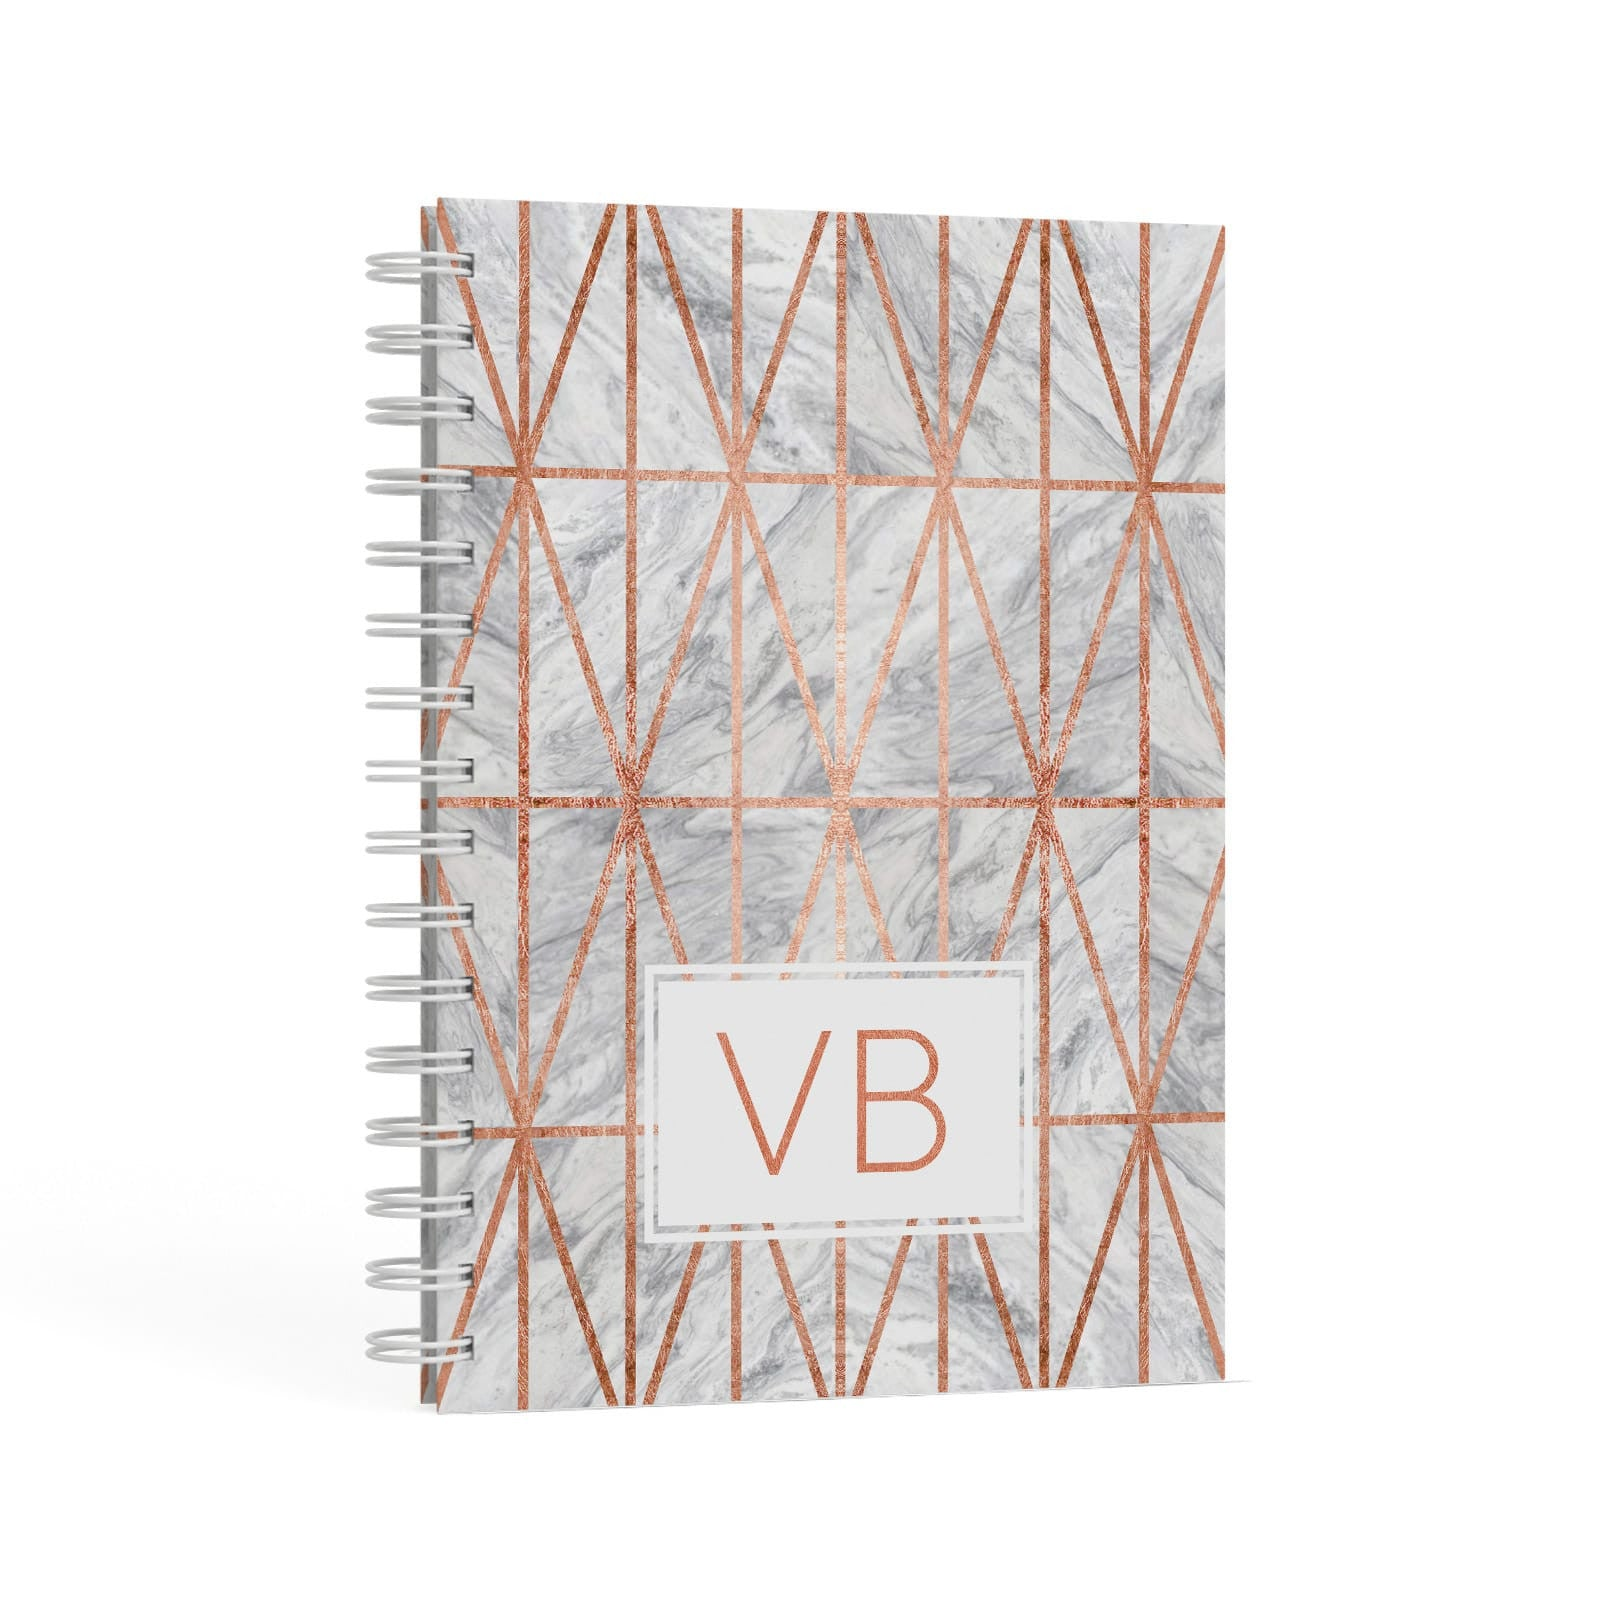 Personalised Triangular Marble Initials A5 Hardcover Notebook Second Side View